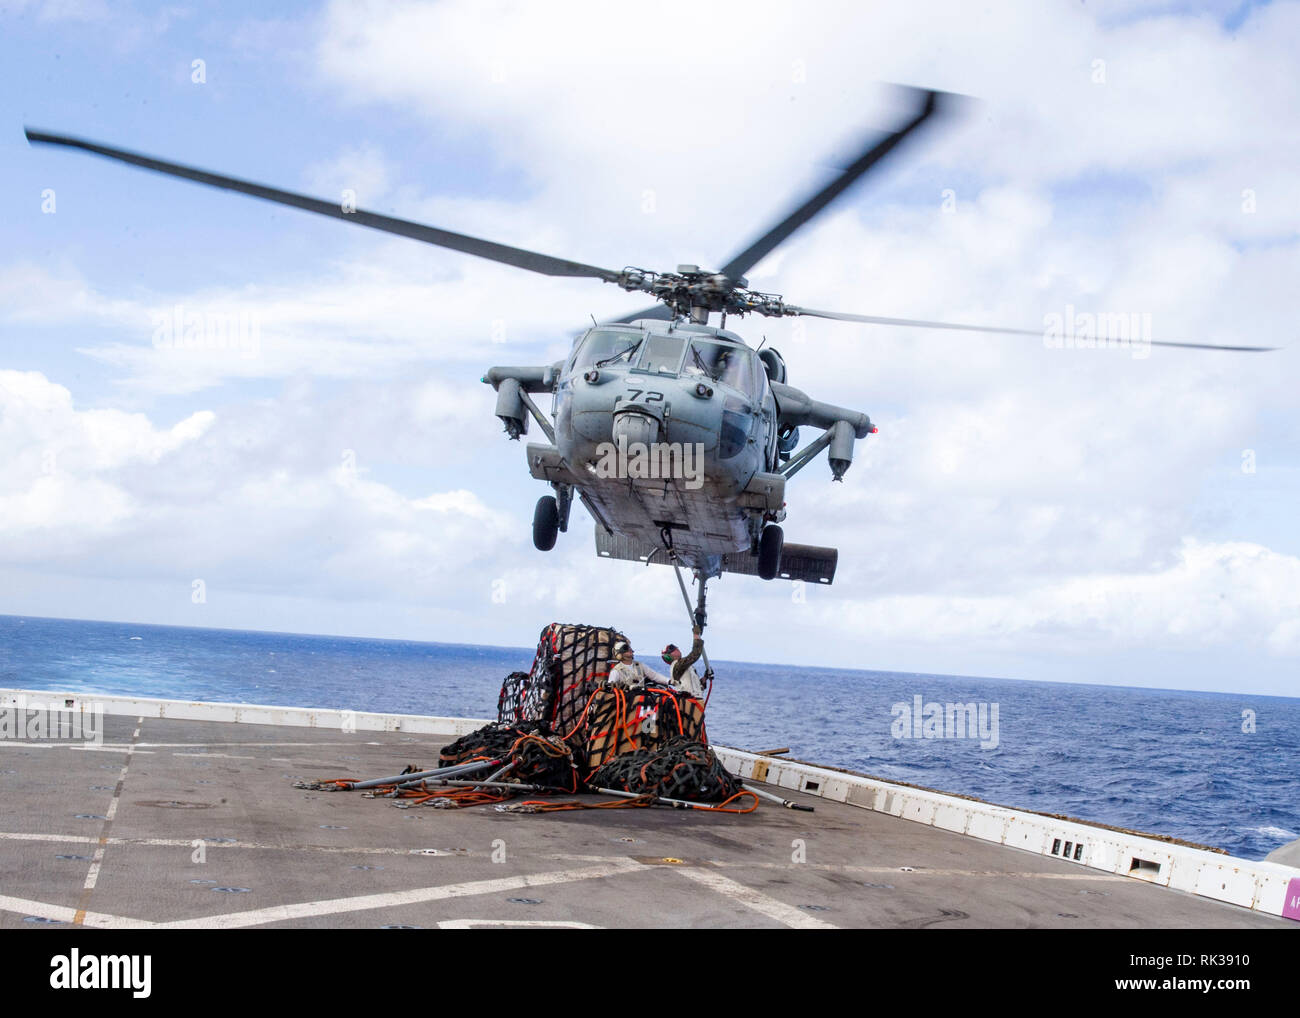 """190207-N-PH222-1335 PACIFIC OCEAN (Feb. 7, 2019) A MH-60S Sea Hawk helicopter, attached to the """"Blackjacks"""" of Helicopter Sea Combat Squadron (HSC) 21, prepares to transport cargo from the flight deck of the San Antonio-class amphibious transport dock ship USS Anchorage (LPD 23) during a vertical replenishment. Anchorage is on a deployment of the Essex Amphibious Ready Group (ARG) and 13th Marine Expeditionary Unit (MEU). The Essex ARG/13th MEU is a capable and lethal Navy-Marine Corps team deployed to the 7th fleet area of operations to support regional stability, reassure partners and allies - Stock Image"""